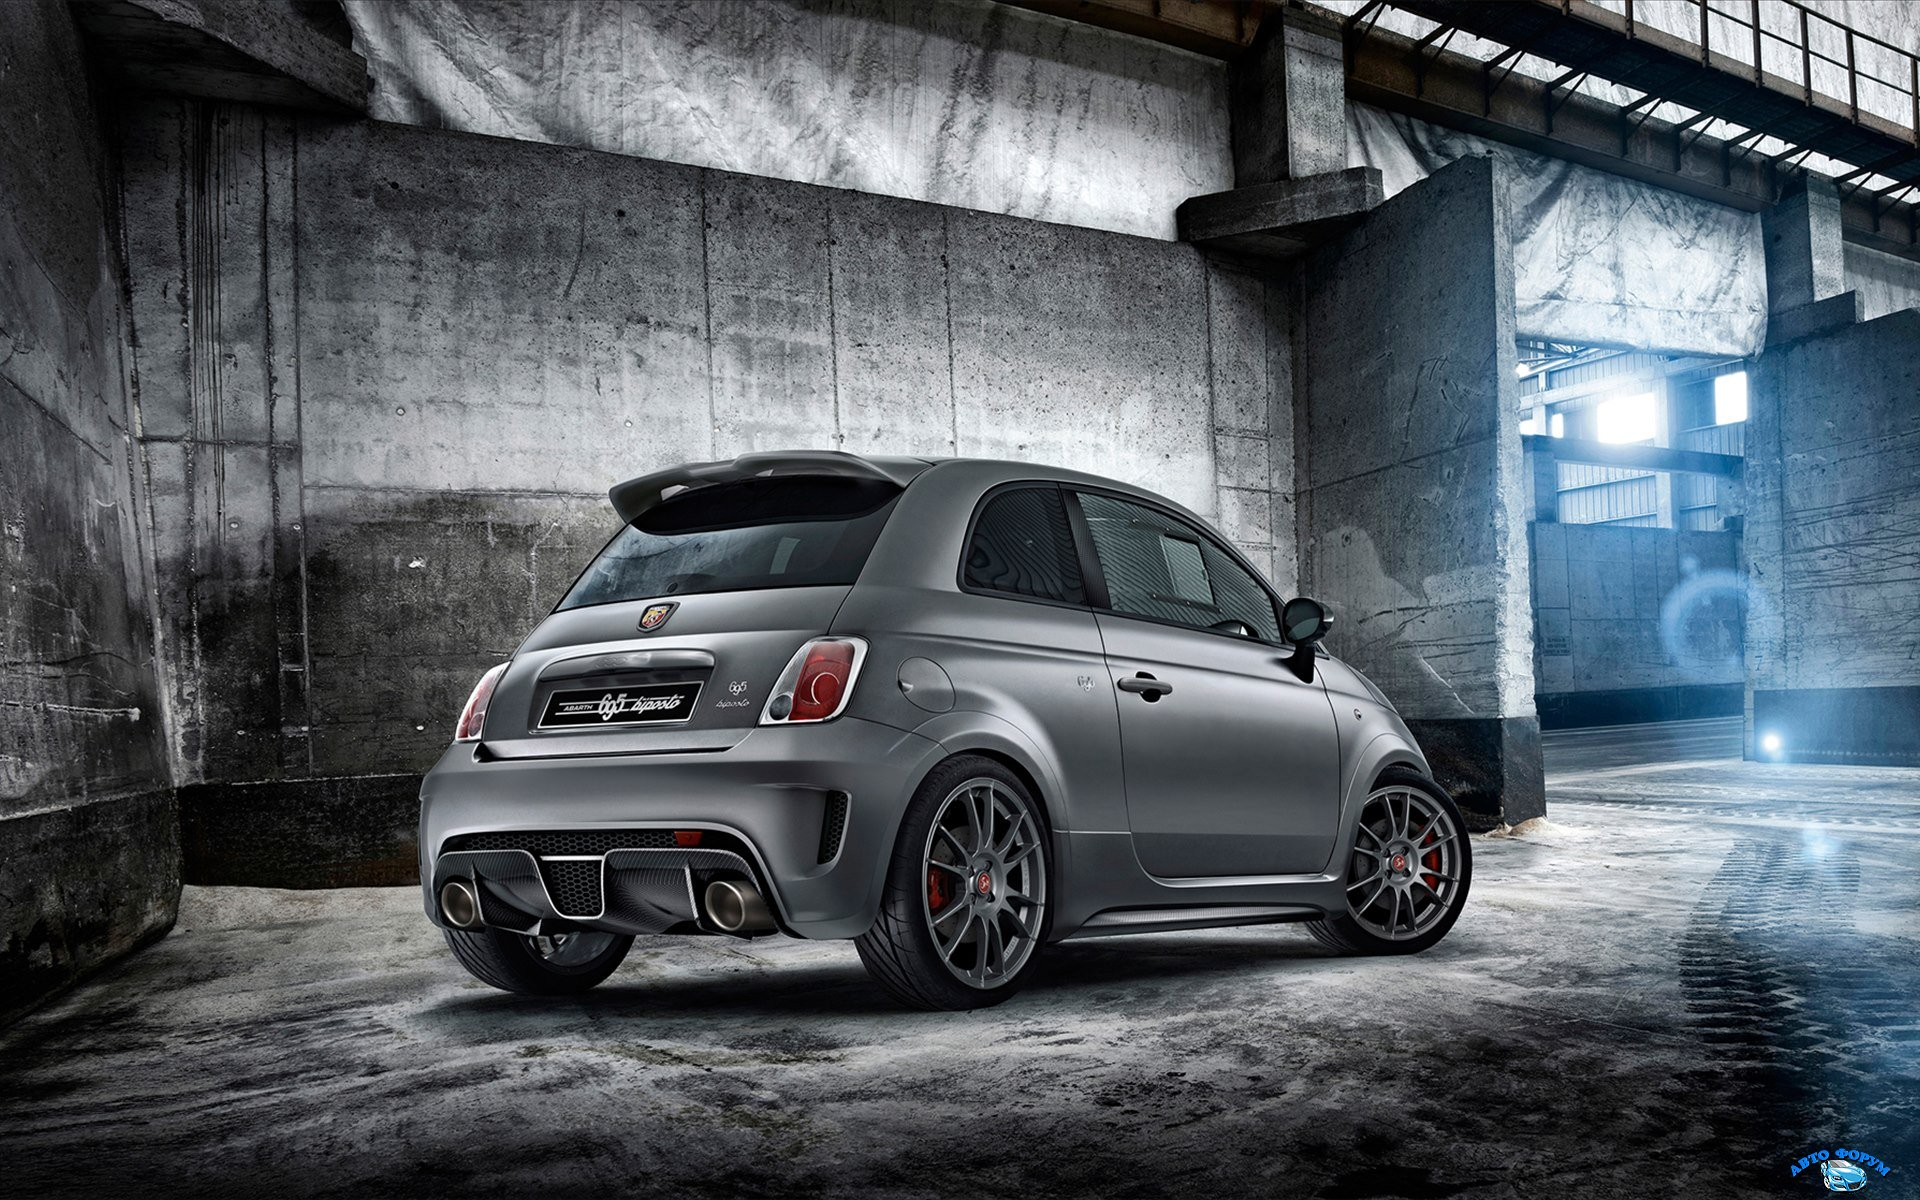 fiat-abarth-695-biposto-2014-widescreen-03.jpg